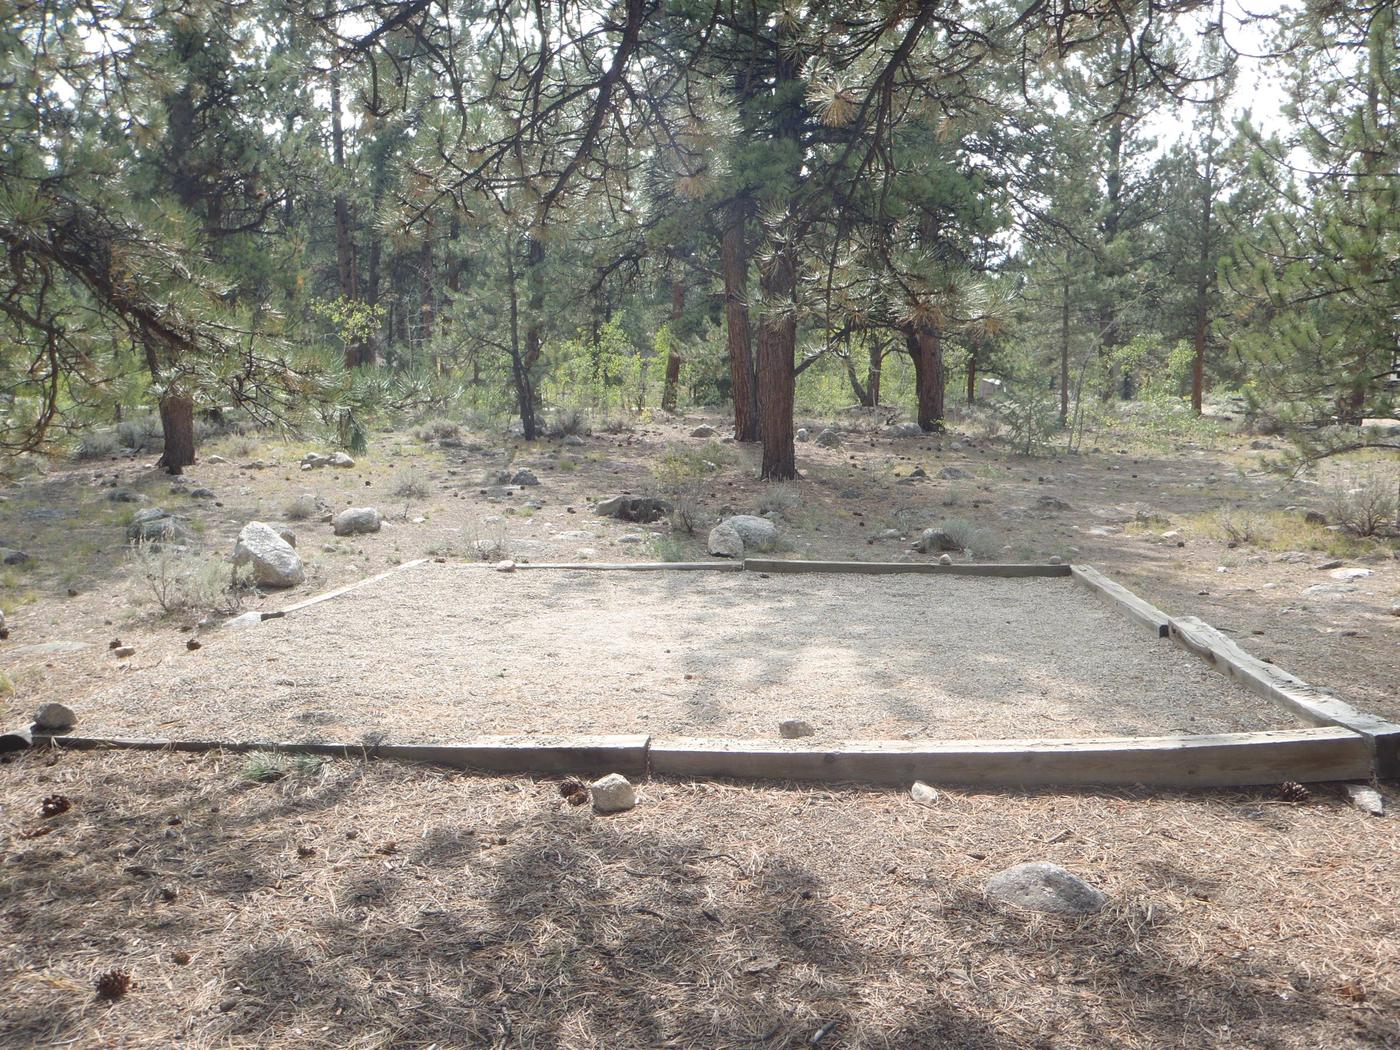 White Star Campground, site 61 tent pad